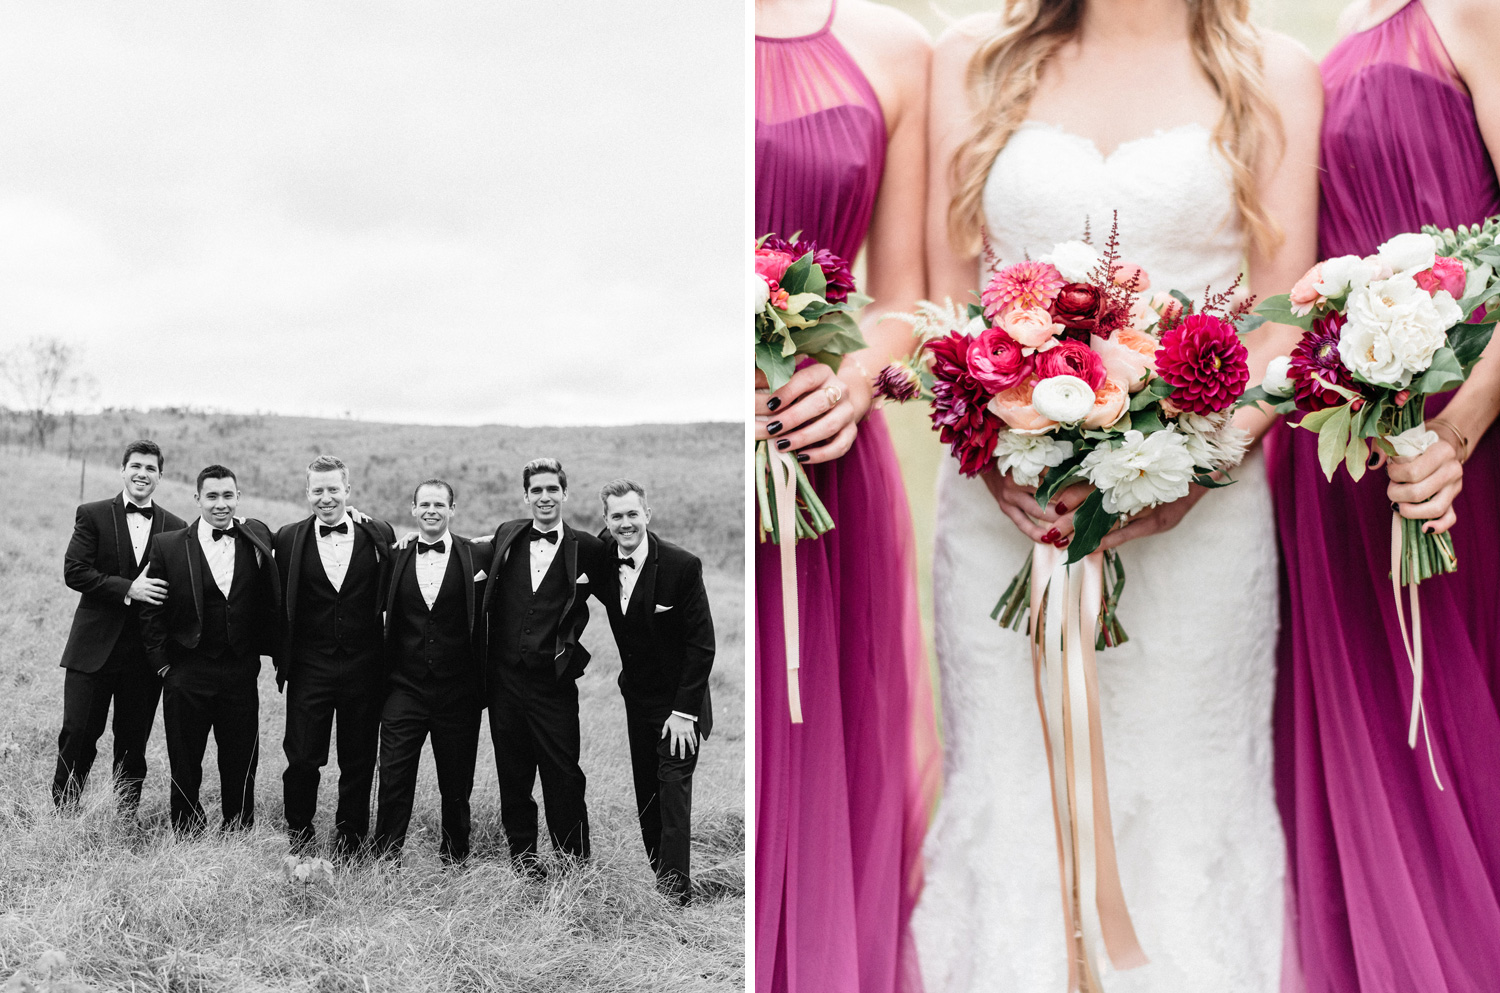 Birch Hill Barn Fall Wedding Bridal Party Portrait Captured by Geneoh Photography